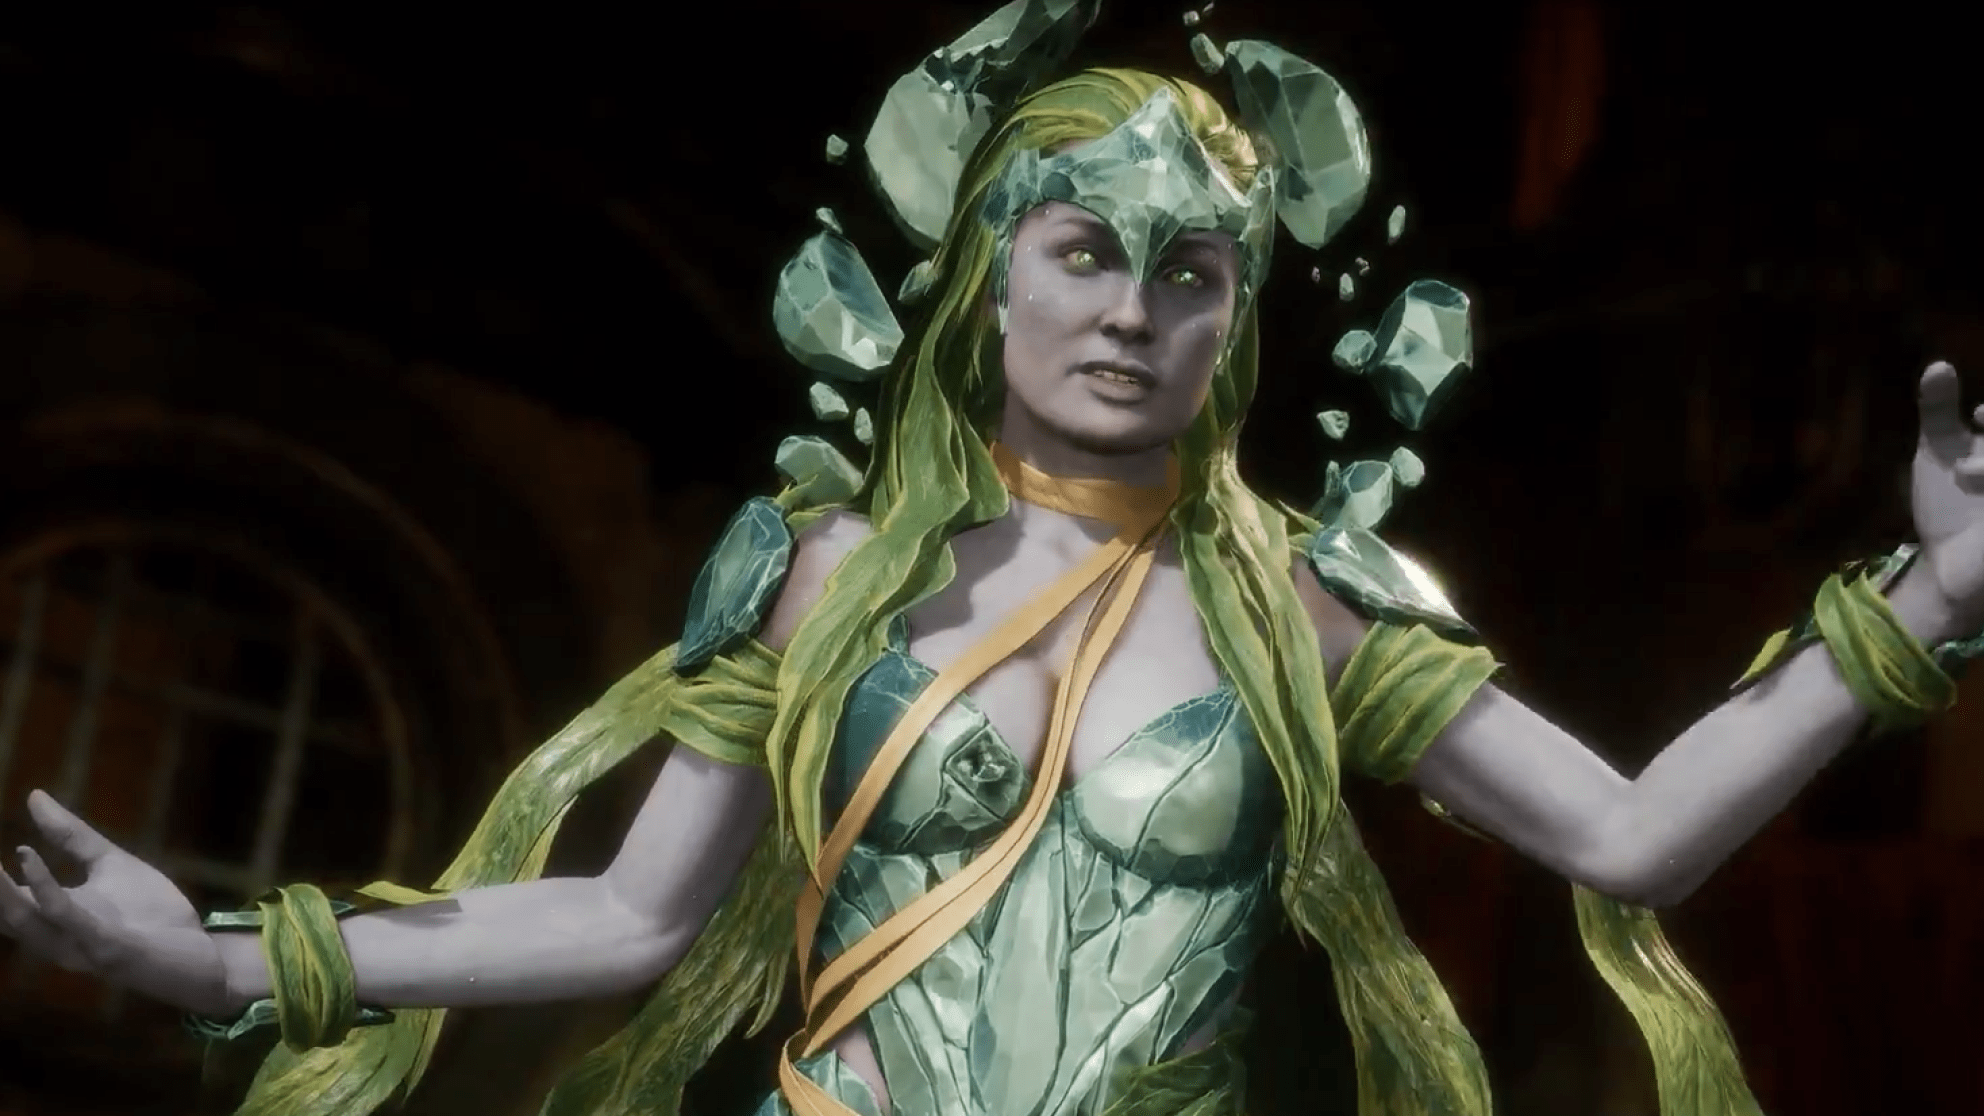 ᐈ Cetrion Is The Brand New Mortal Kombat 11 Character Weplay